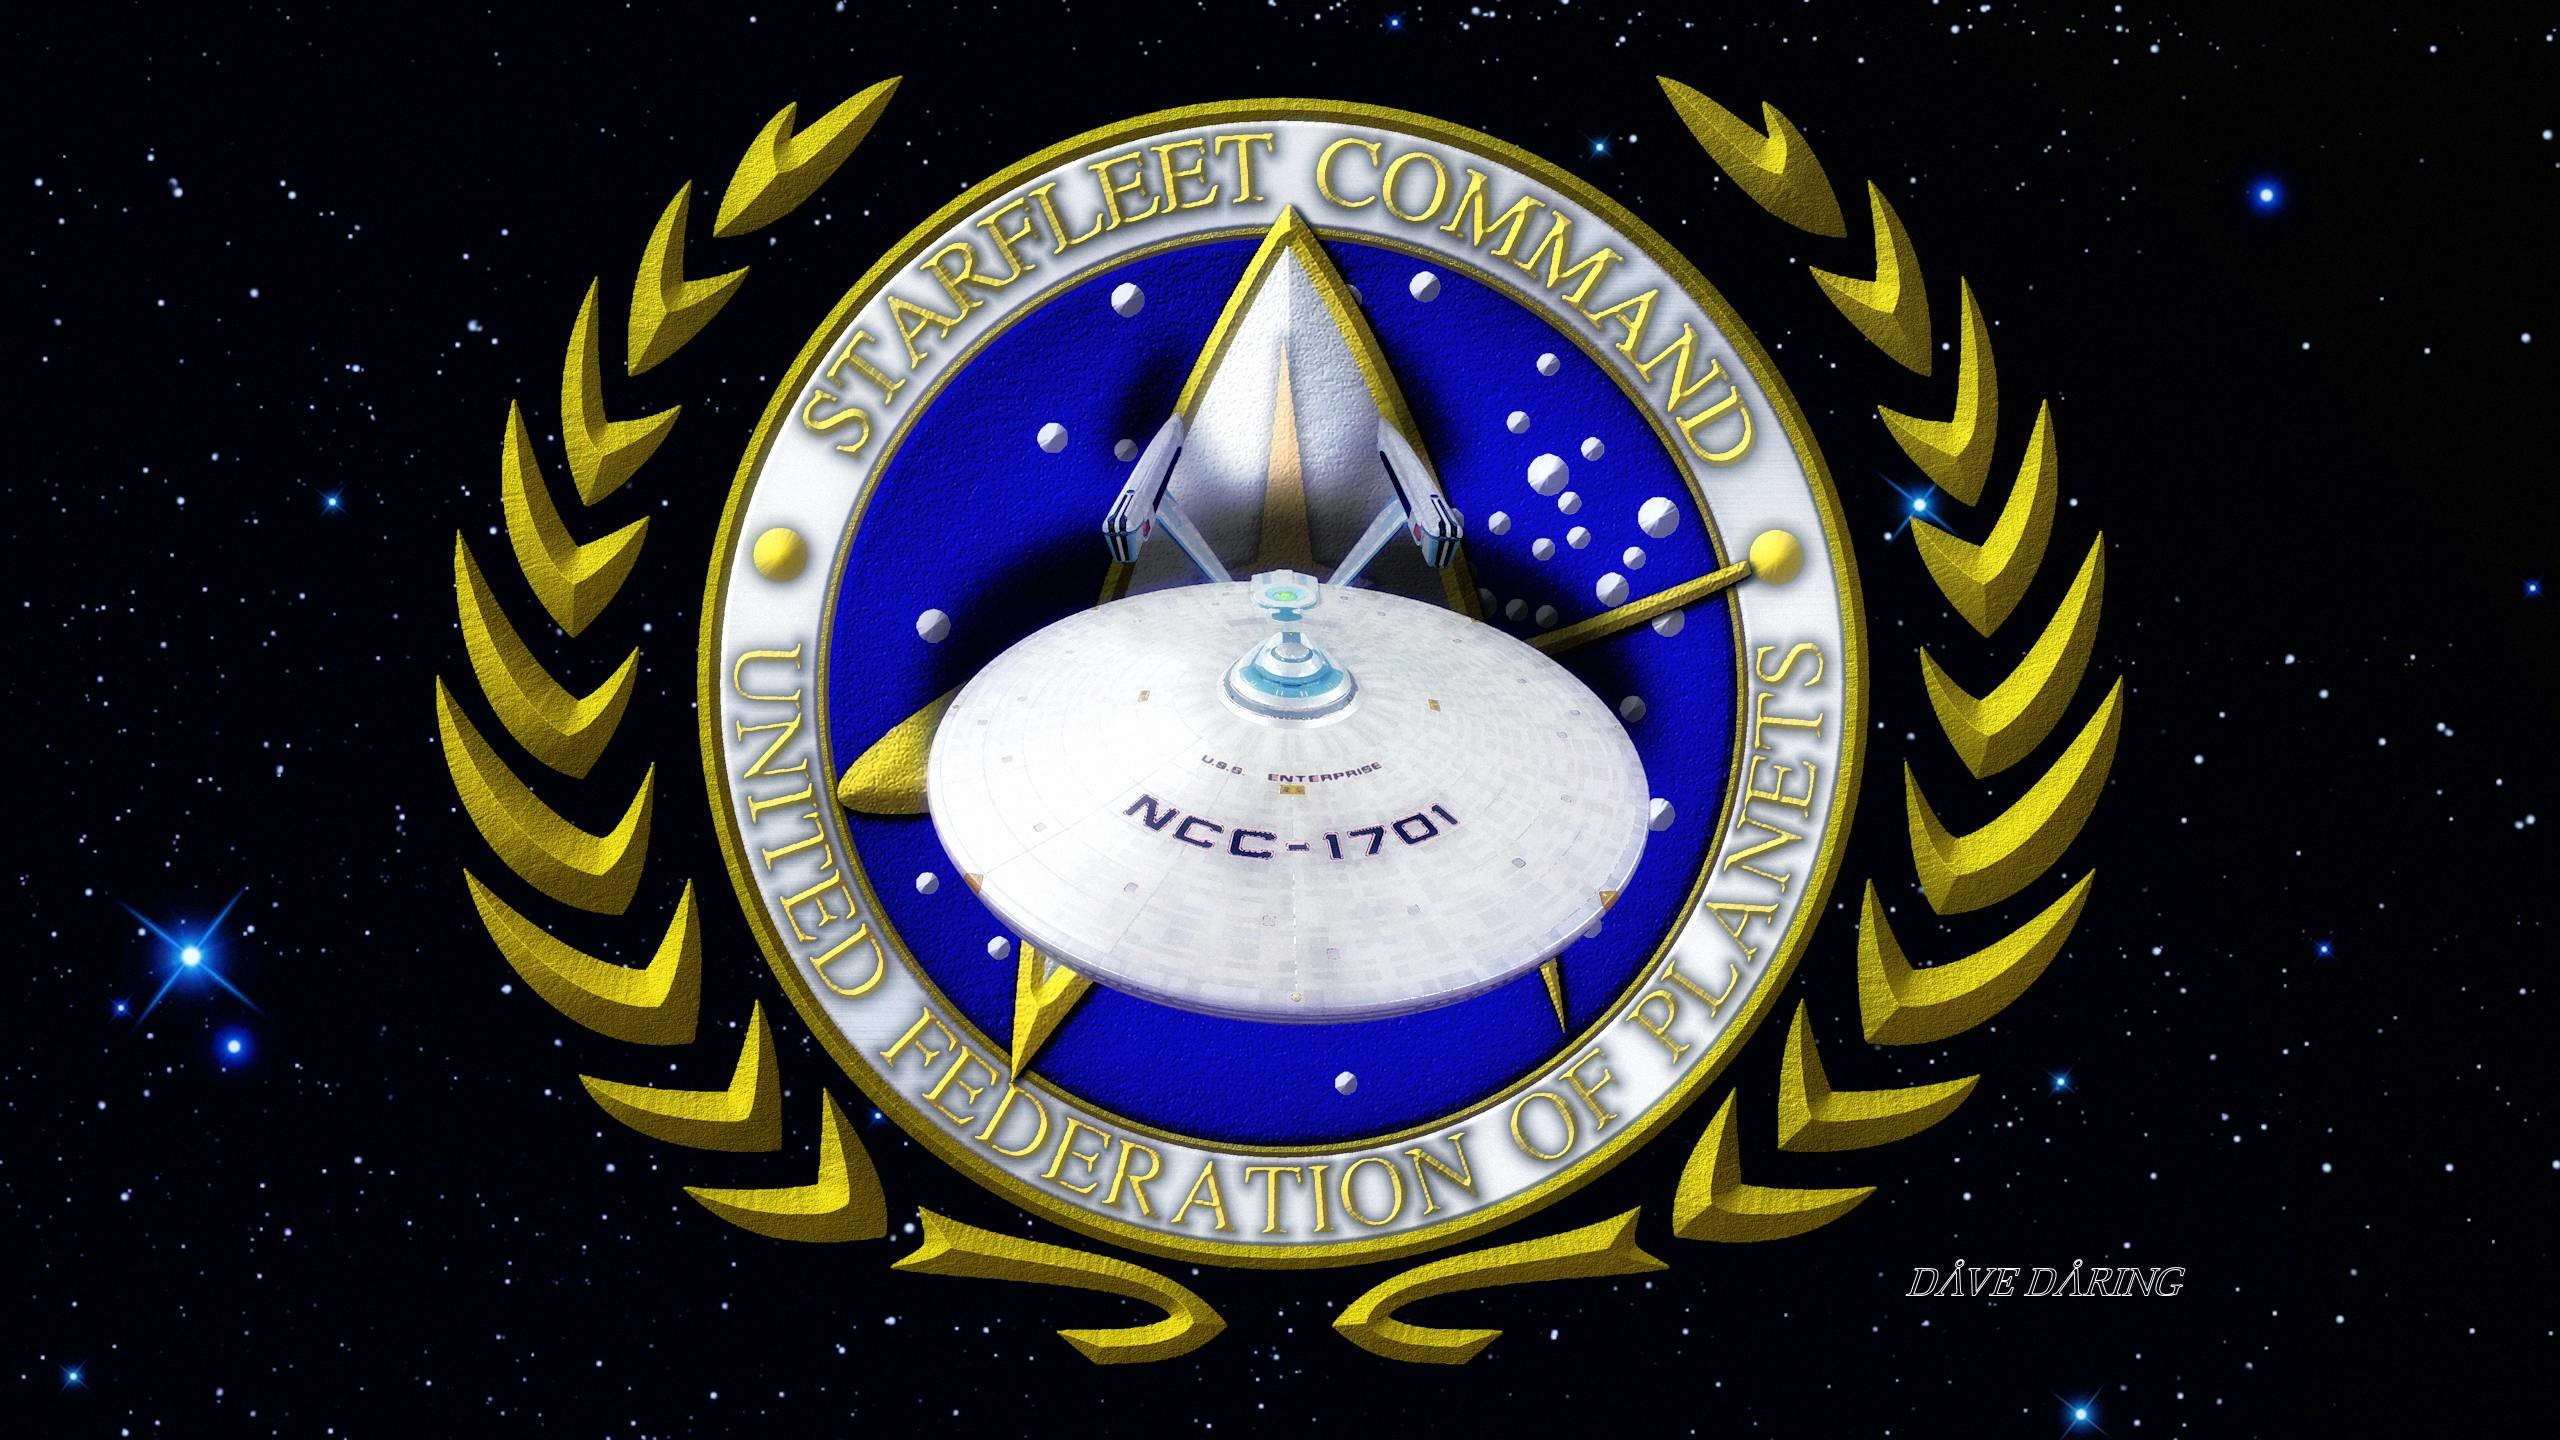 … The ENTERPRISE of Starfleet Command by Dave-Daring